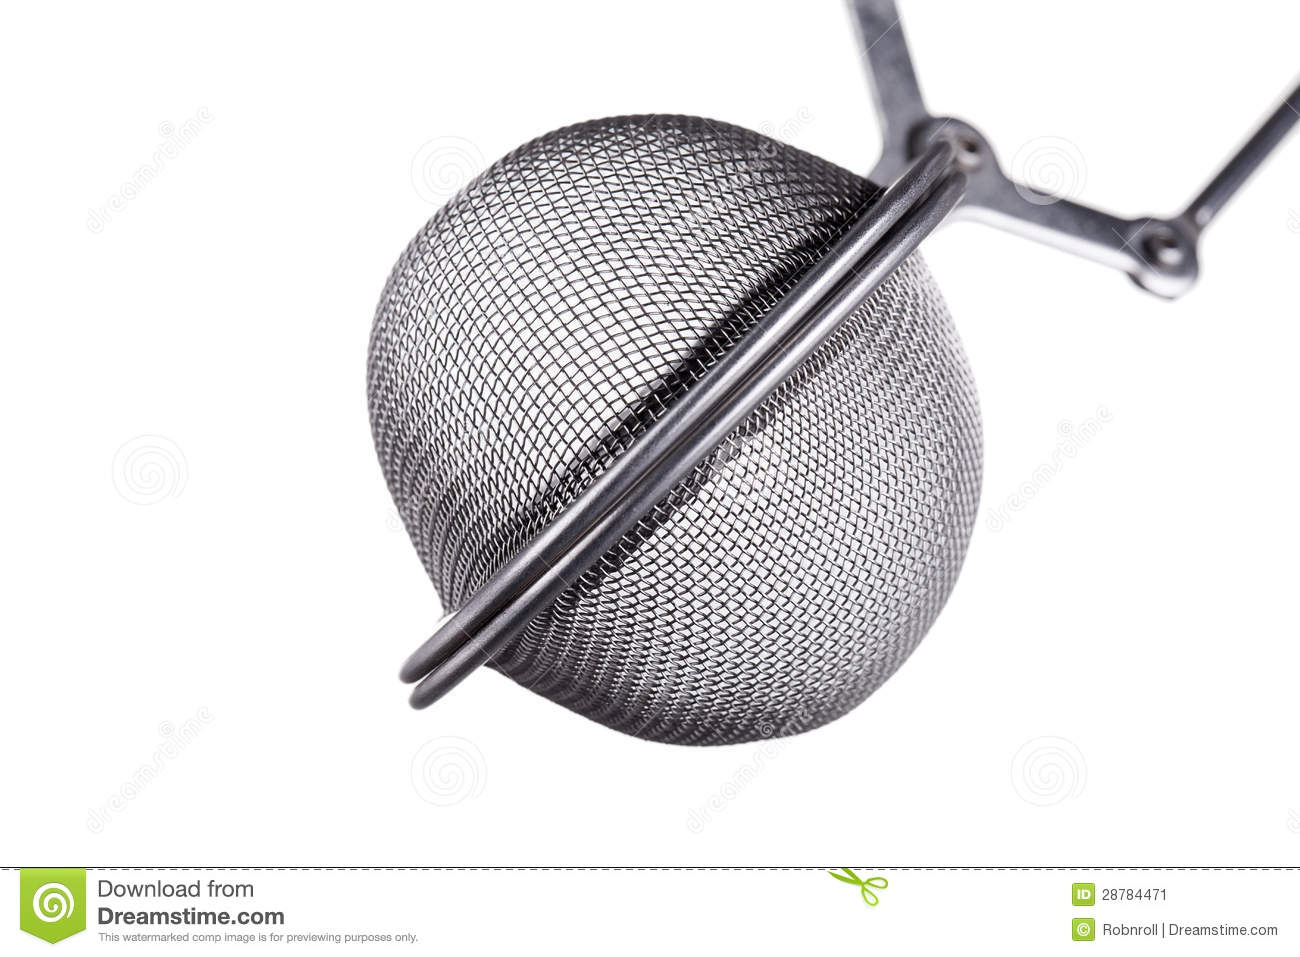 Macro shot of a tea infuser, isolated on white